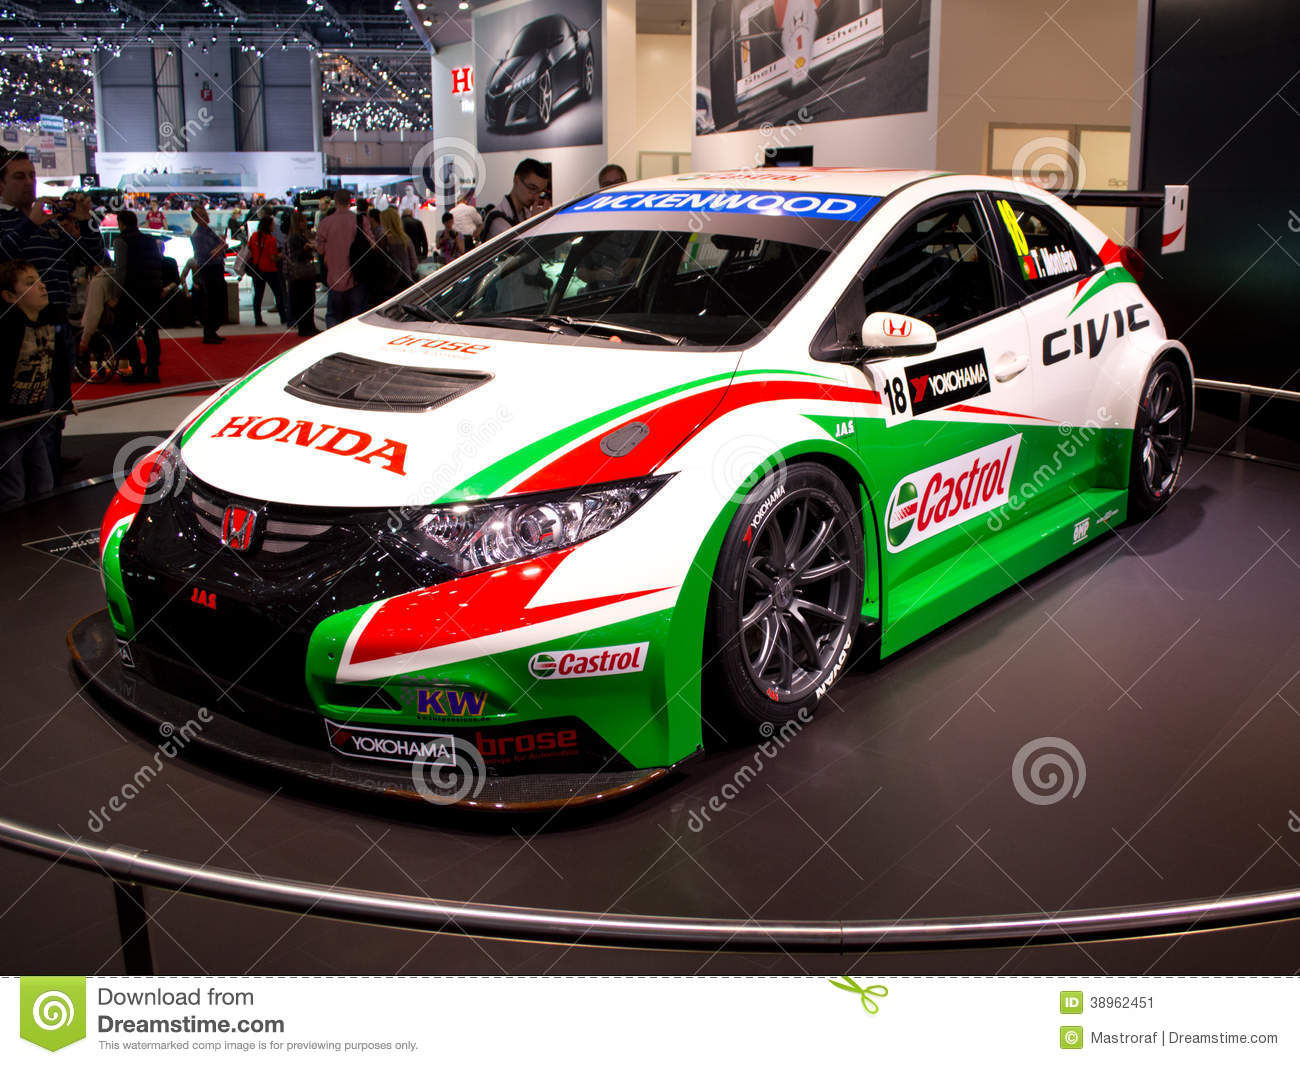 honda civic wtcc geneva 2014 editorial photo image 38962451. Black Bedroom Furniture Sets. Home Design Ideas